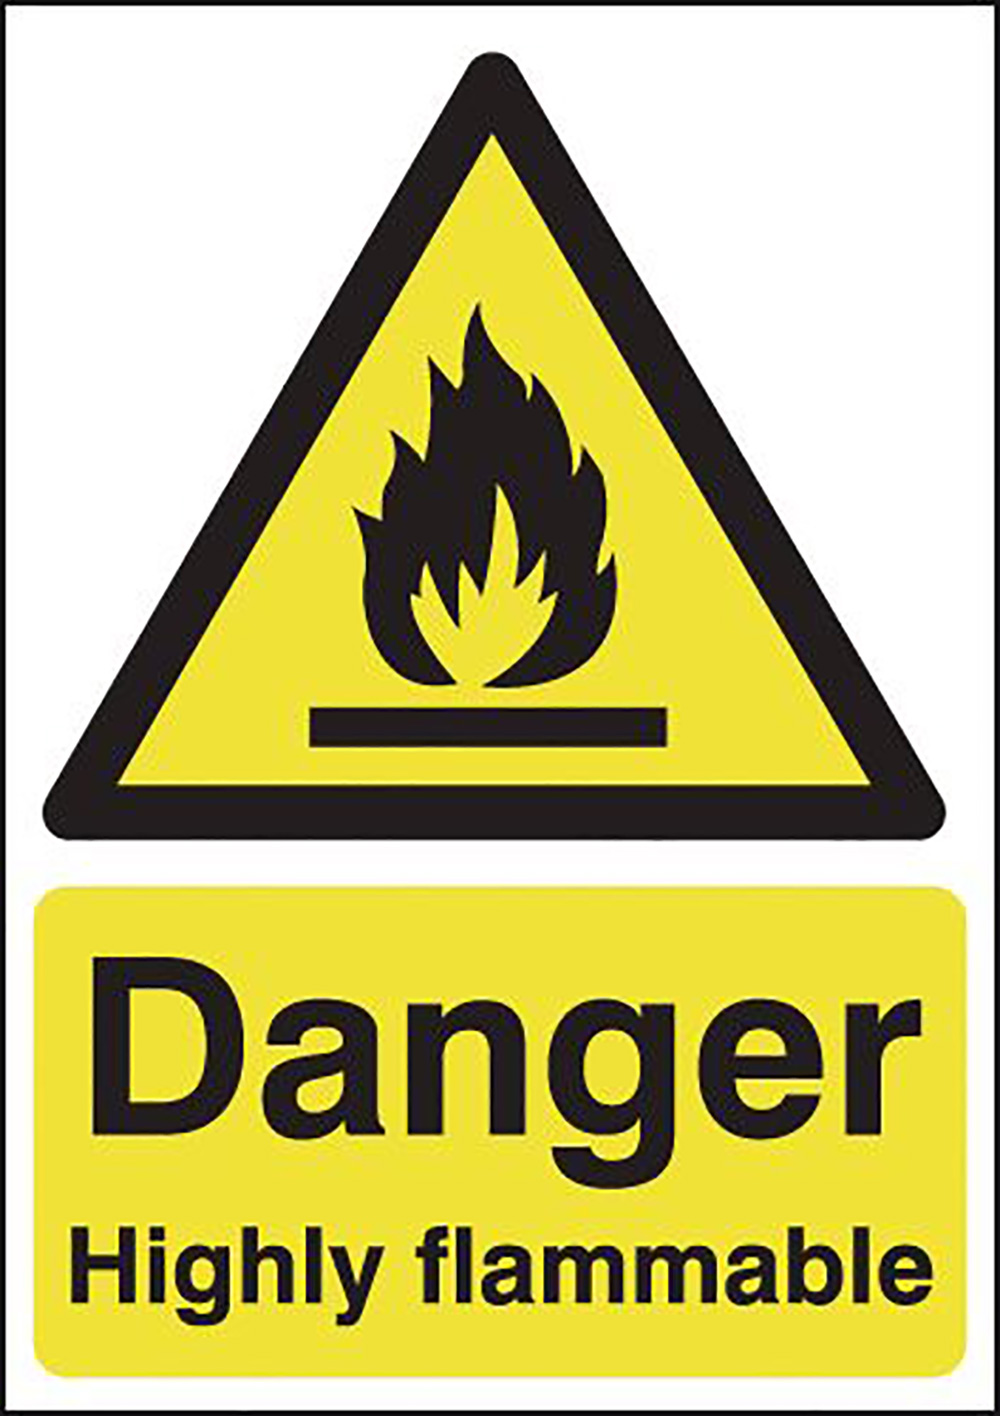 Danger Highly Flammable 420x297mm Self Adhesive Vinyl Safety Sign